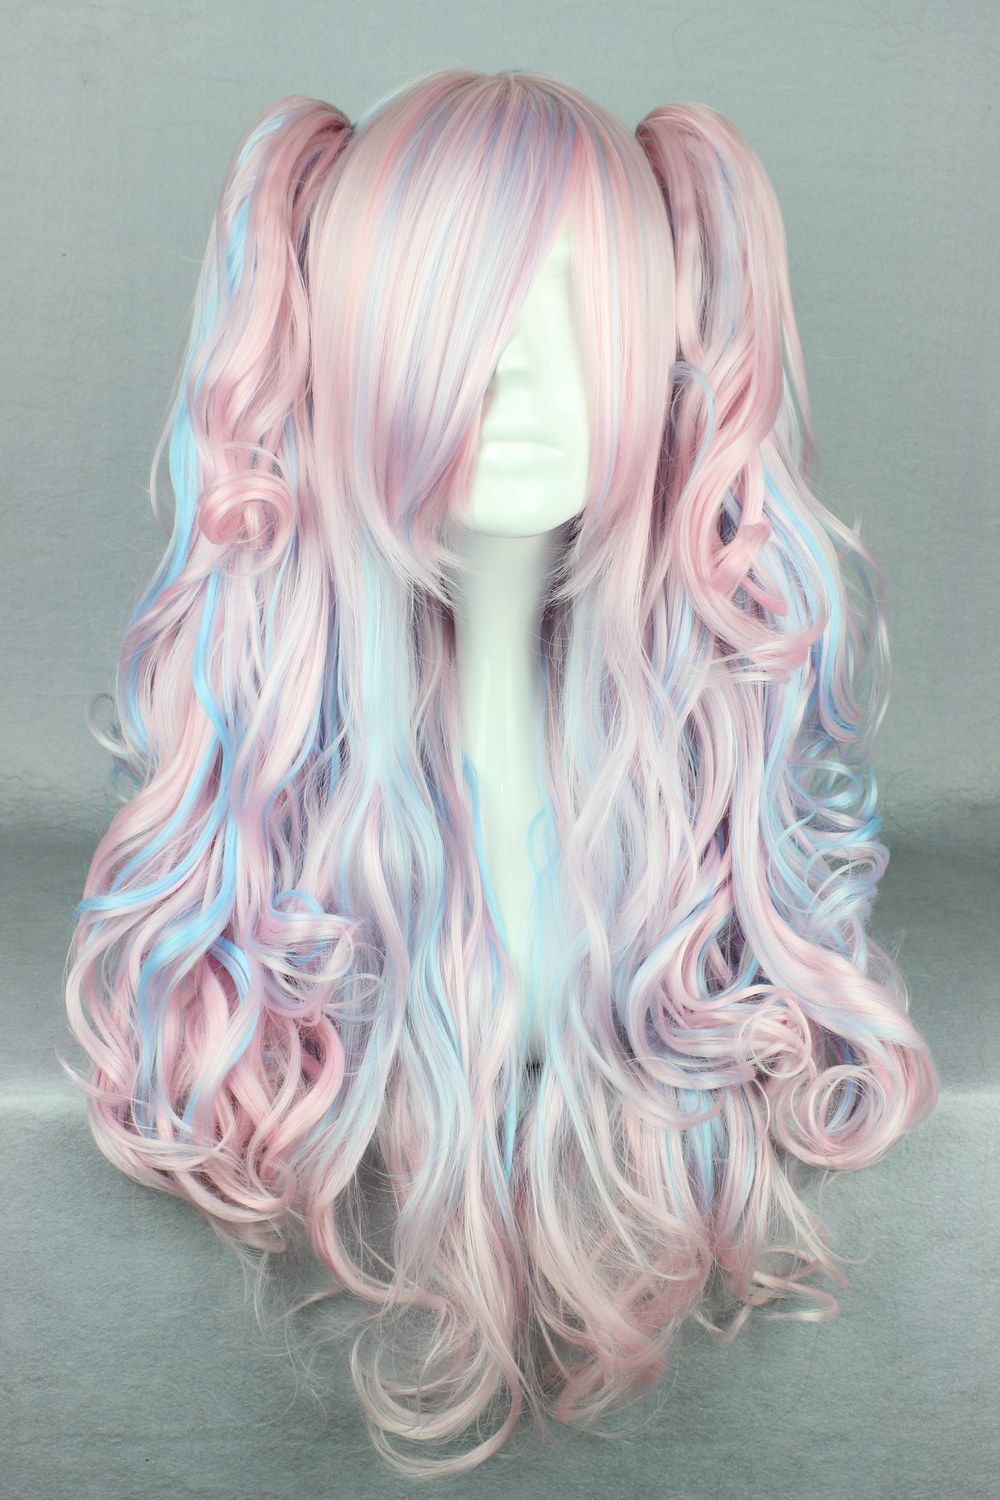 Synthetic None-lacewigs Synthetic Wigs Mcoser 55cm Long Multi-color Beautiful Lolita Wig Anime Wig And To Have A Long Life.